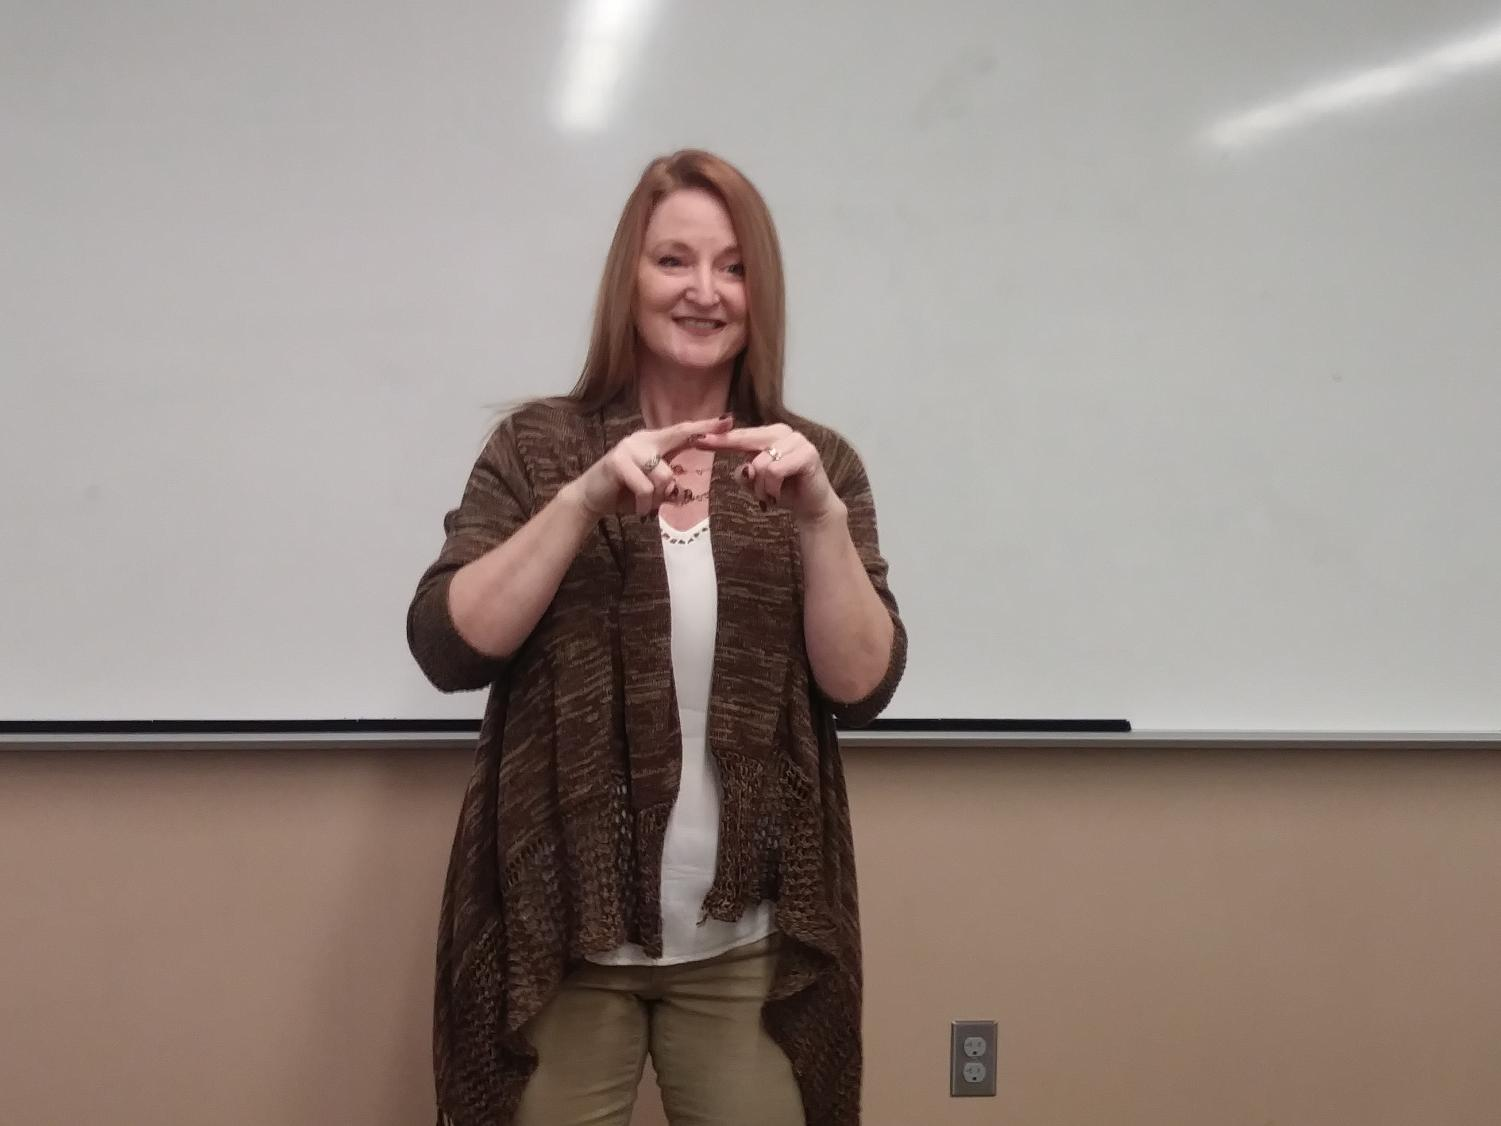 ASL teacher Becky Mazzara is back teaching after a license issue. She is very excited to be back doing what she loves, teaching ASL to students.